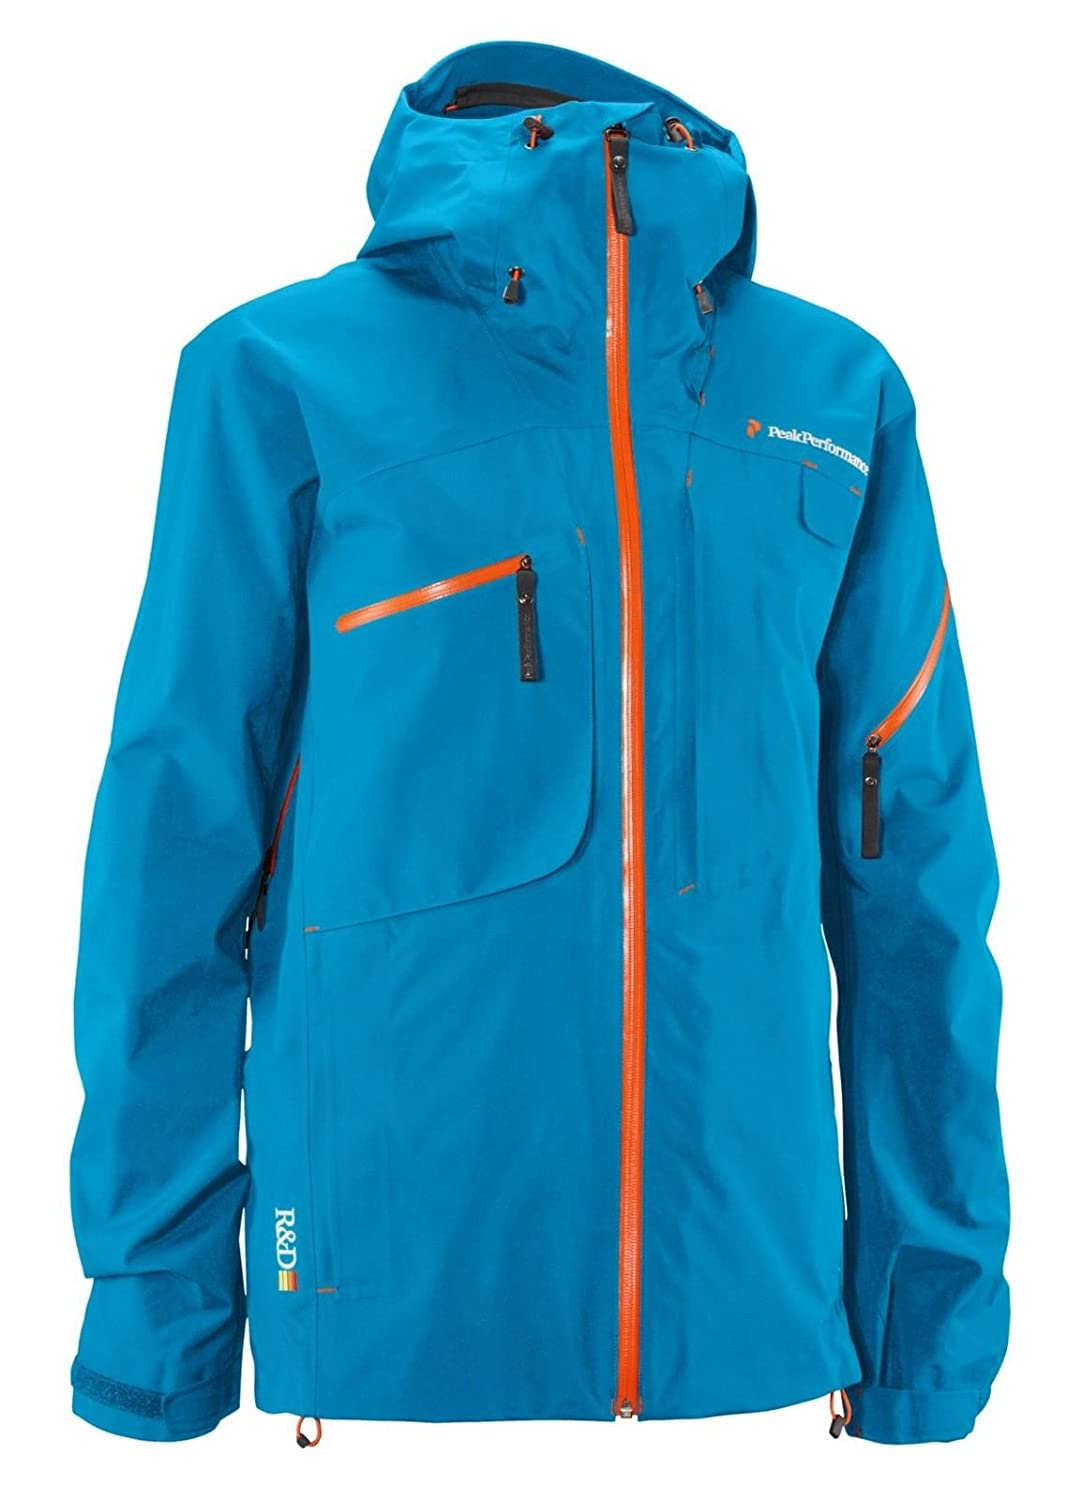 Peak Performance Heli Alpine Jacket Men's Jacket